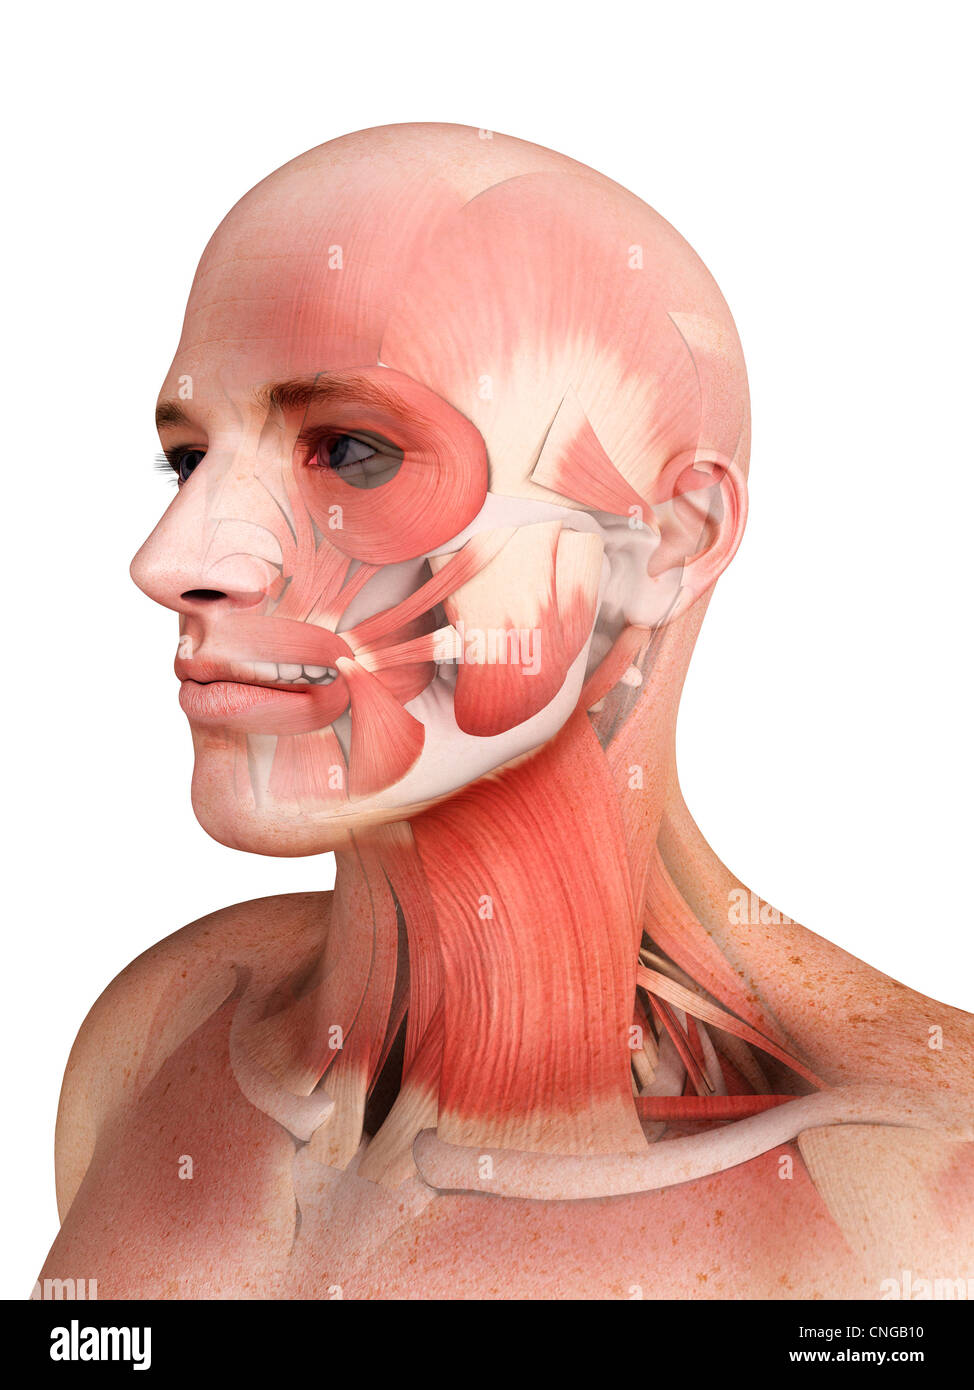 Male musculature  artwork - Stock Image